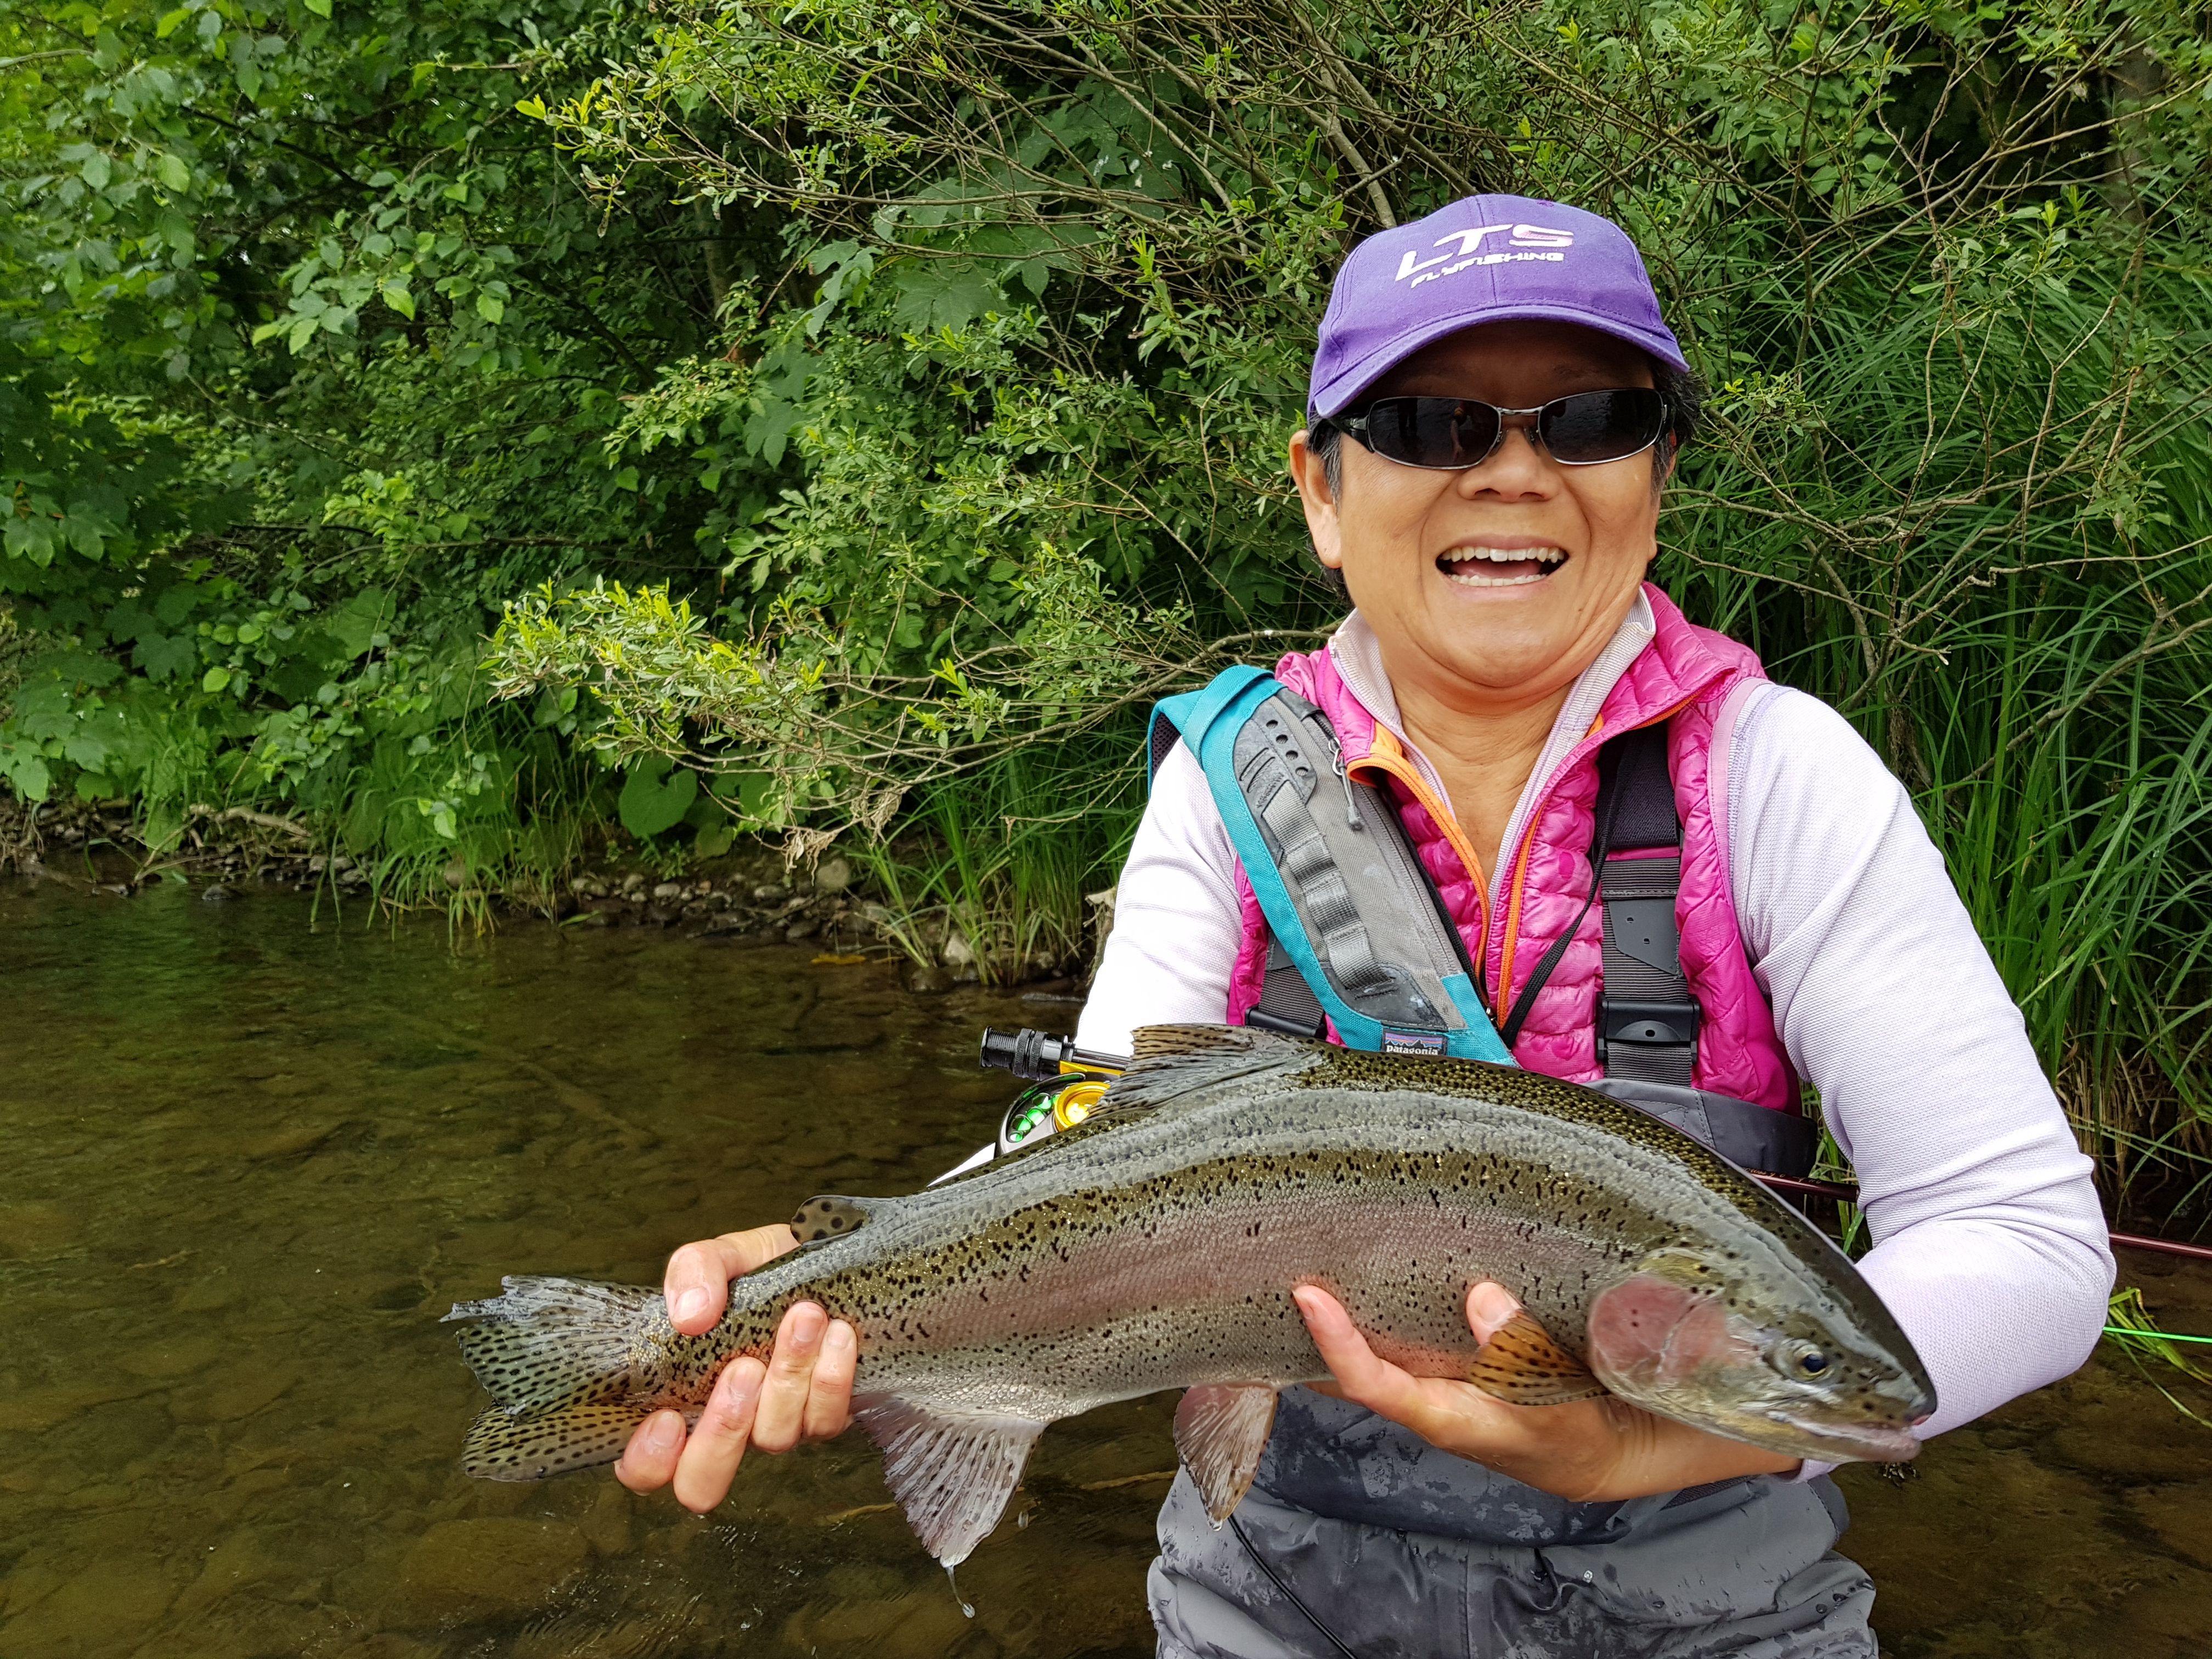 Donna with big Rainbow Trout from Vah River - Slovakia